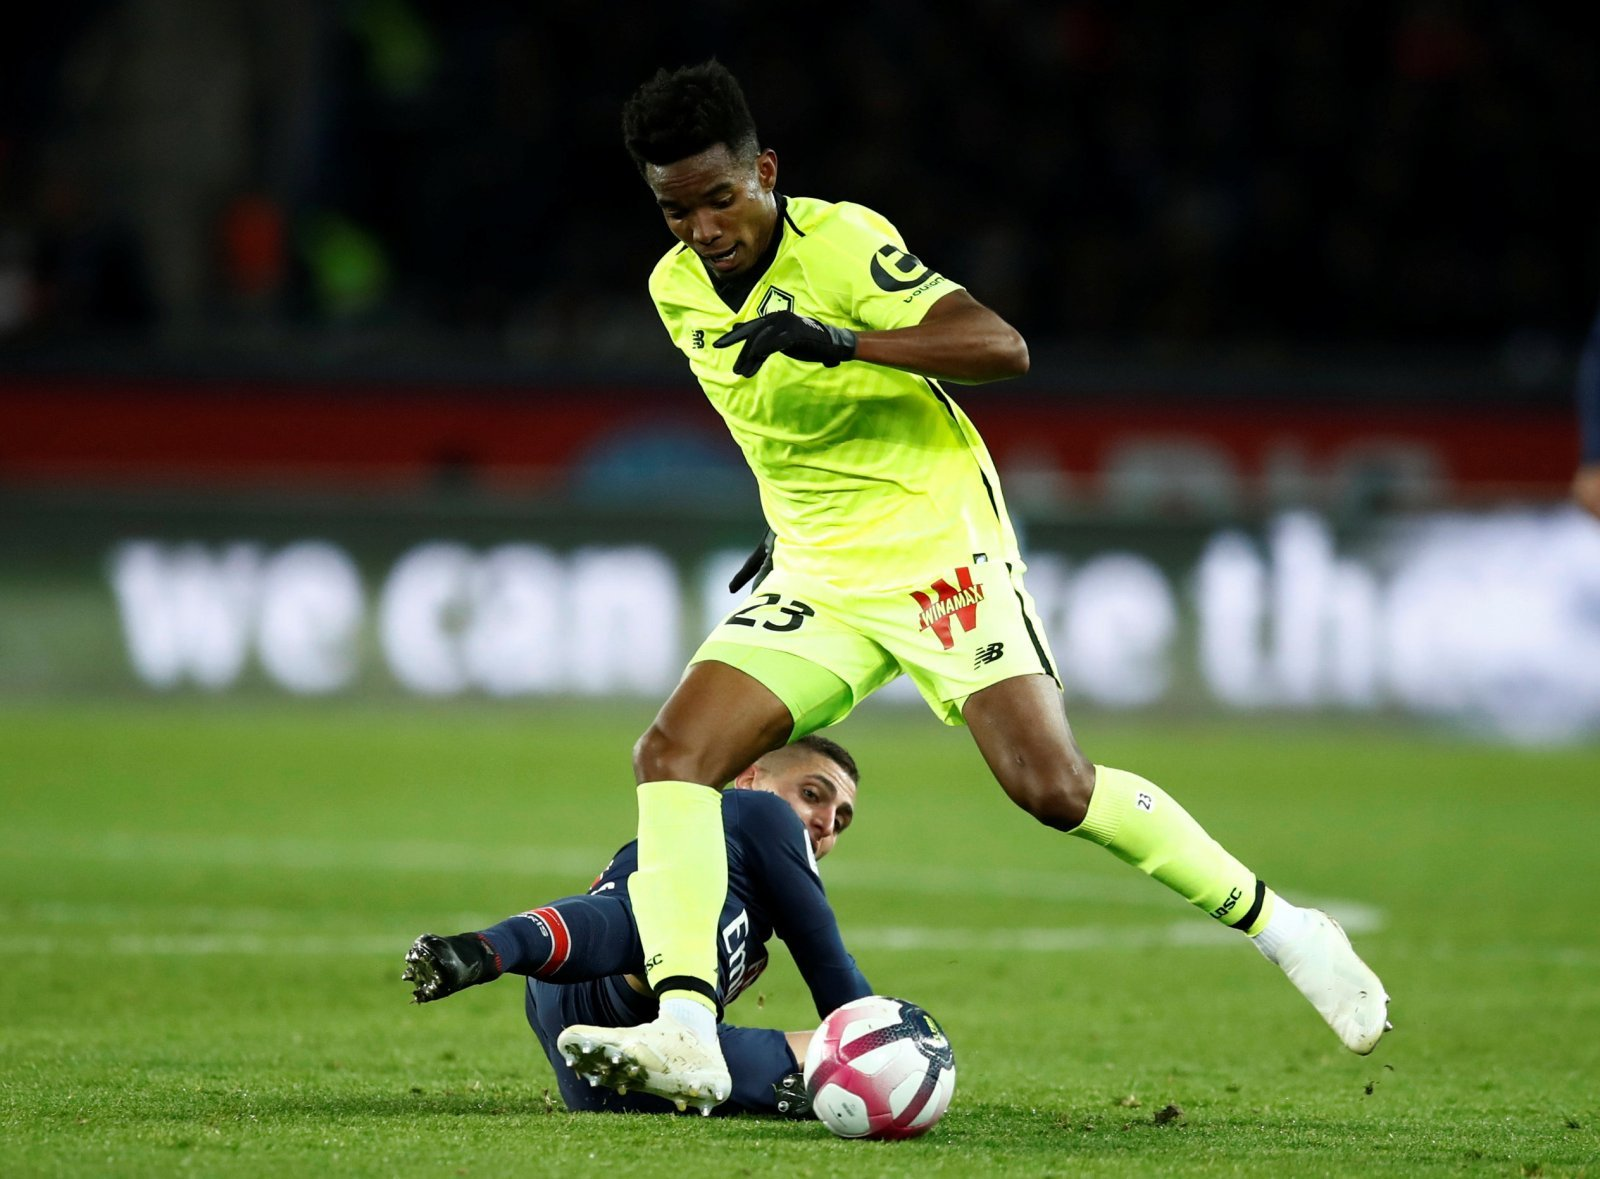 Thiago Mendes could fit into Manchester City's midfield very well